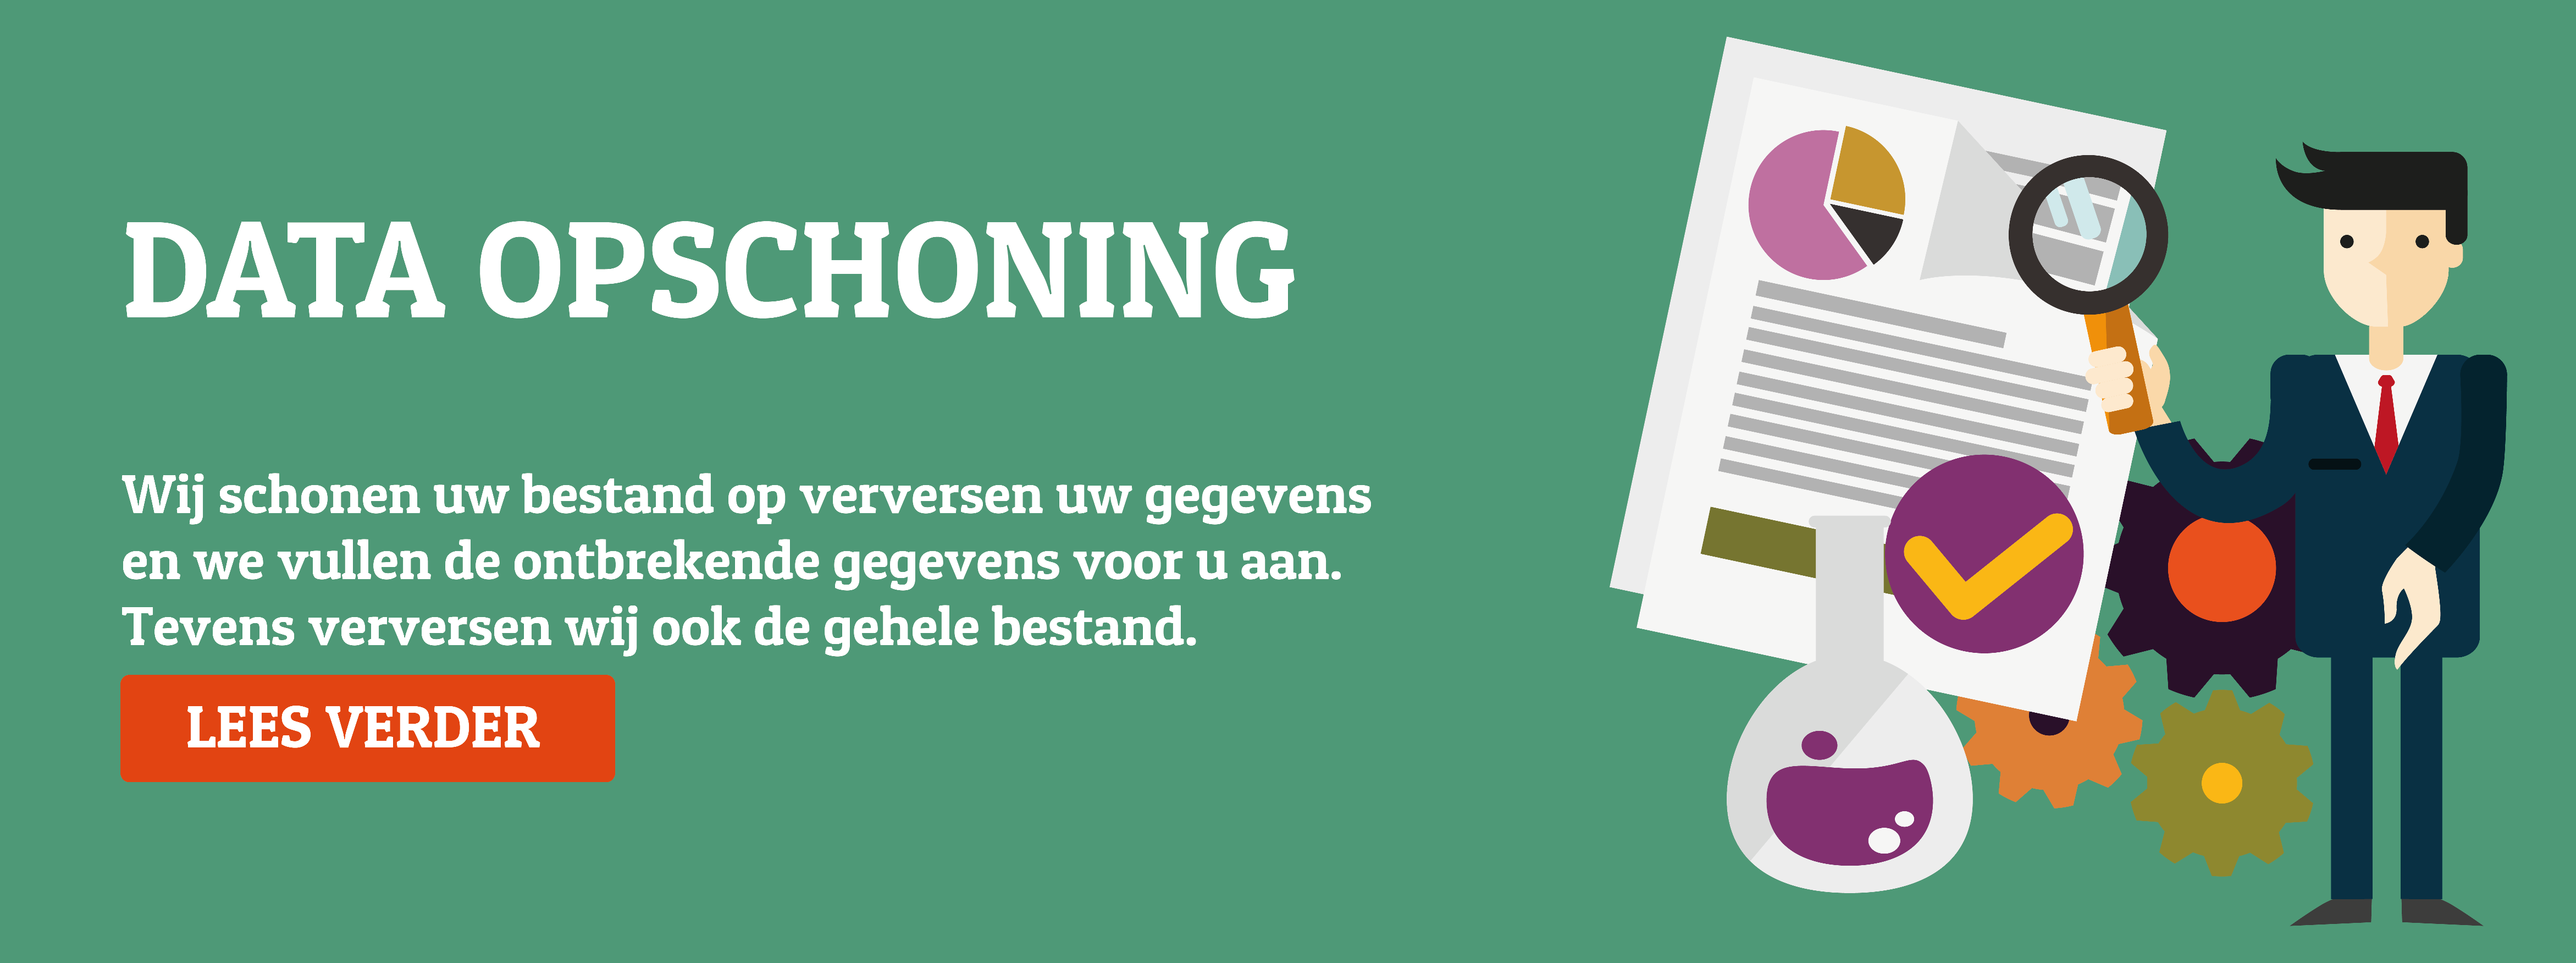 Data Opschoning